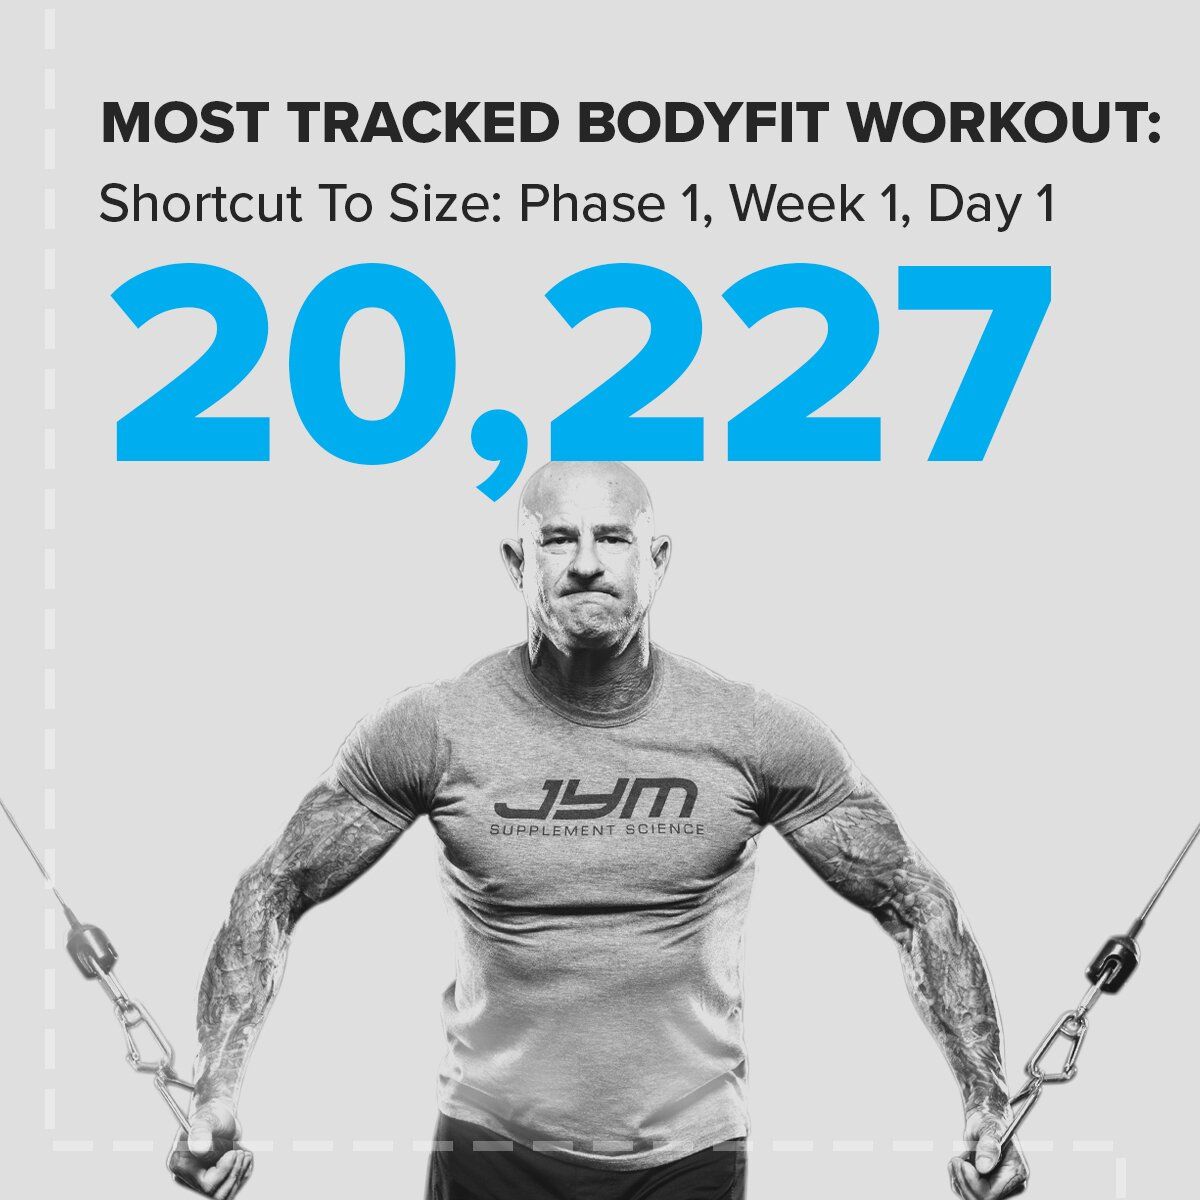 8 most tracked bodyfit workout%20 Stronger Together: Your Year in Fitness 2020